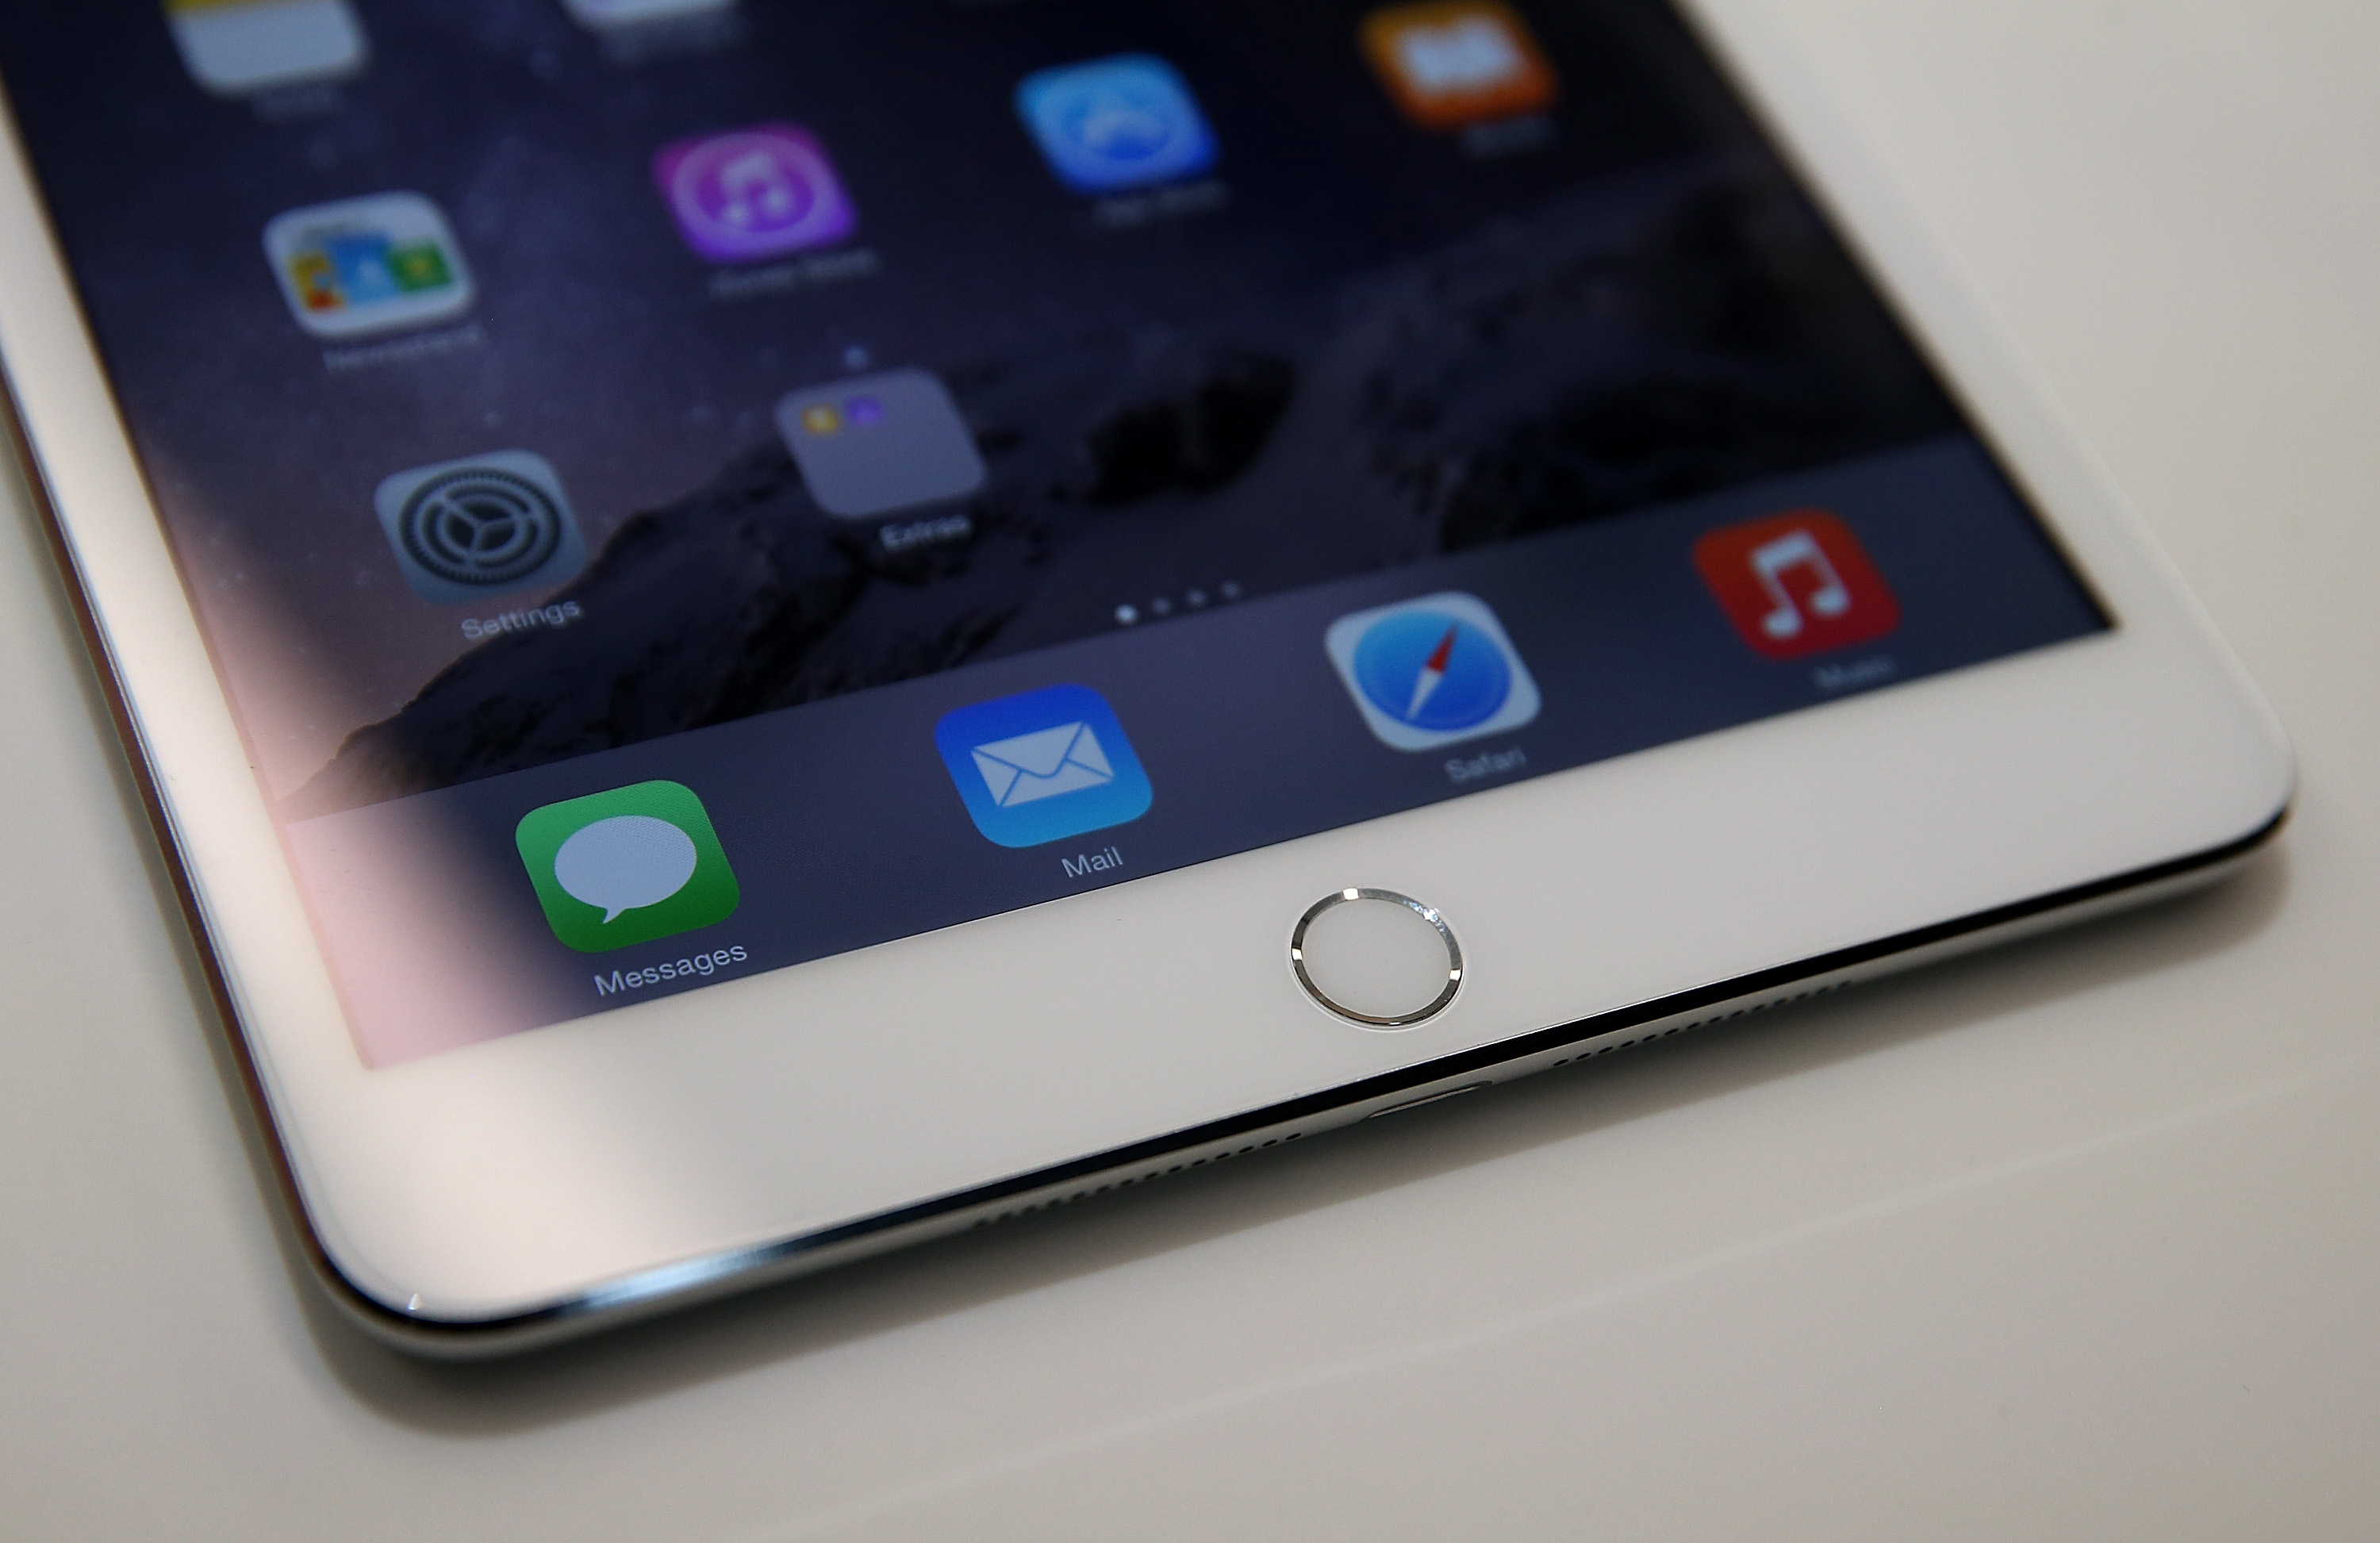 A touch I.D. pad is seen on the new iPad Mini 3 during an Apple special event on October 16, 2014 in Cupertino, California. (Photo by Justin Sullivan/Getty Images)